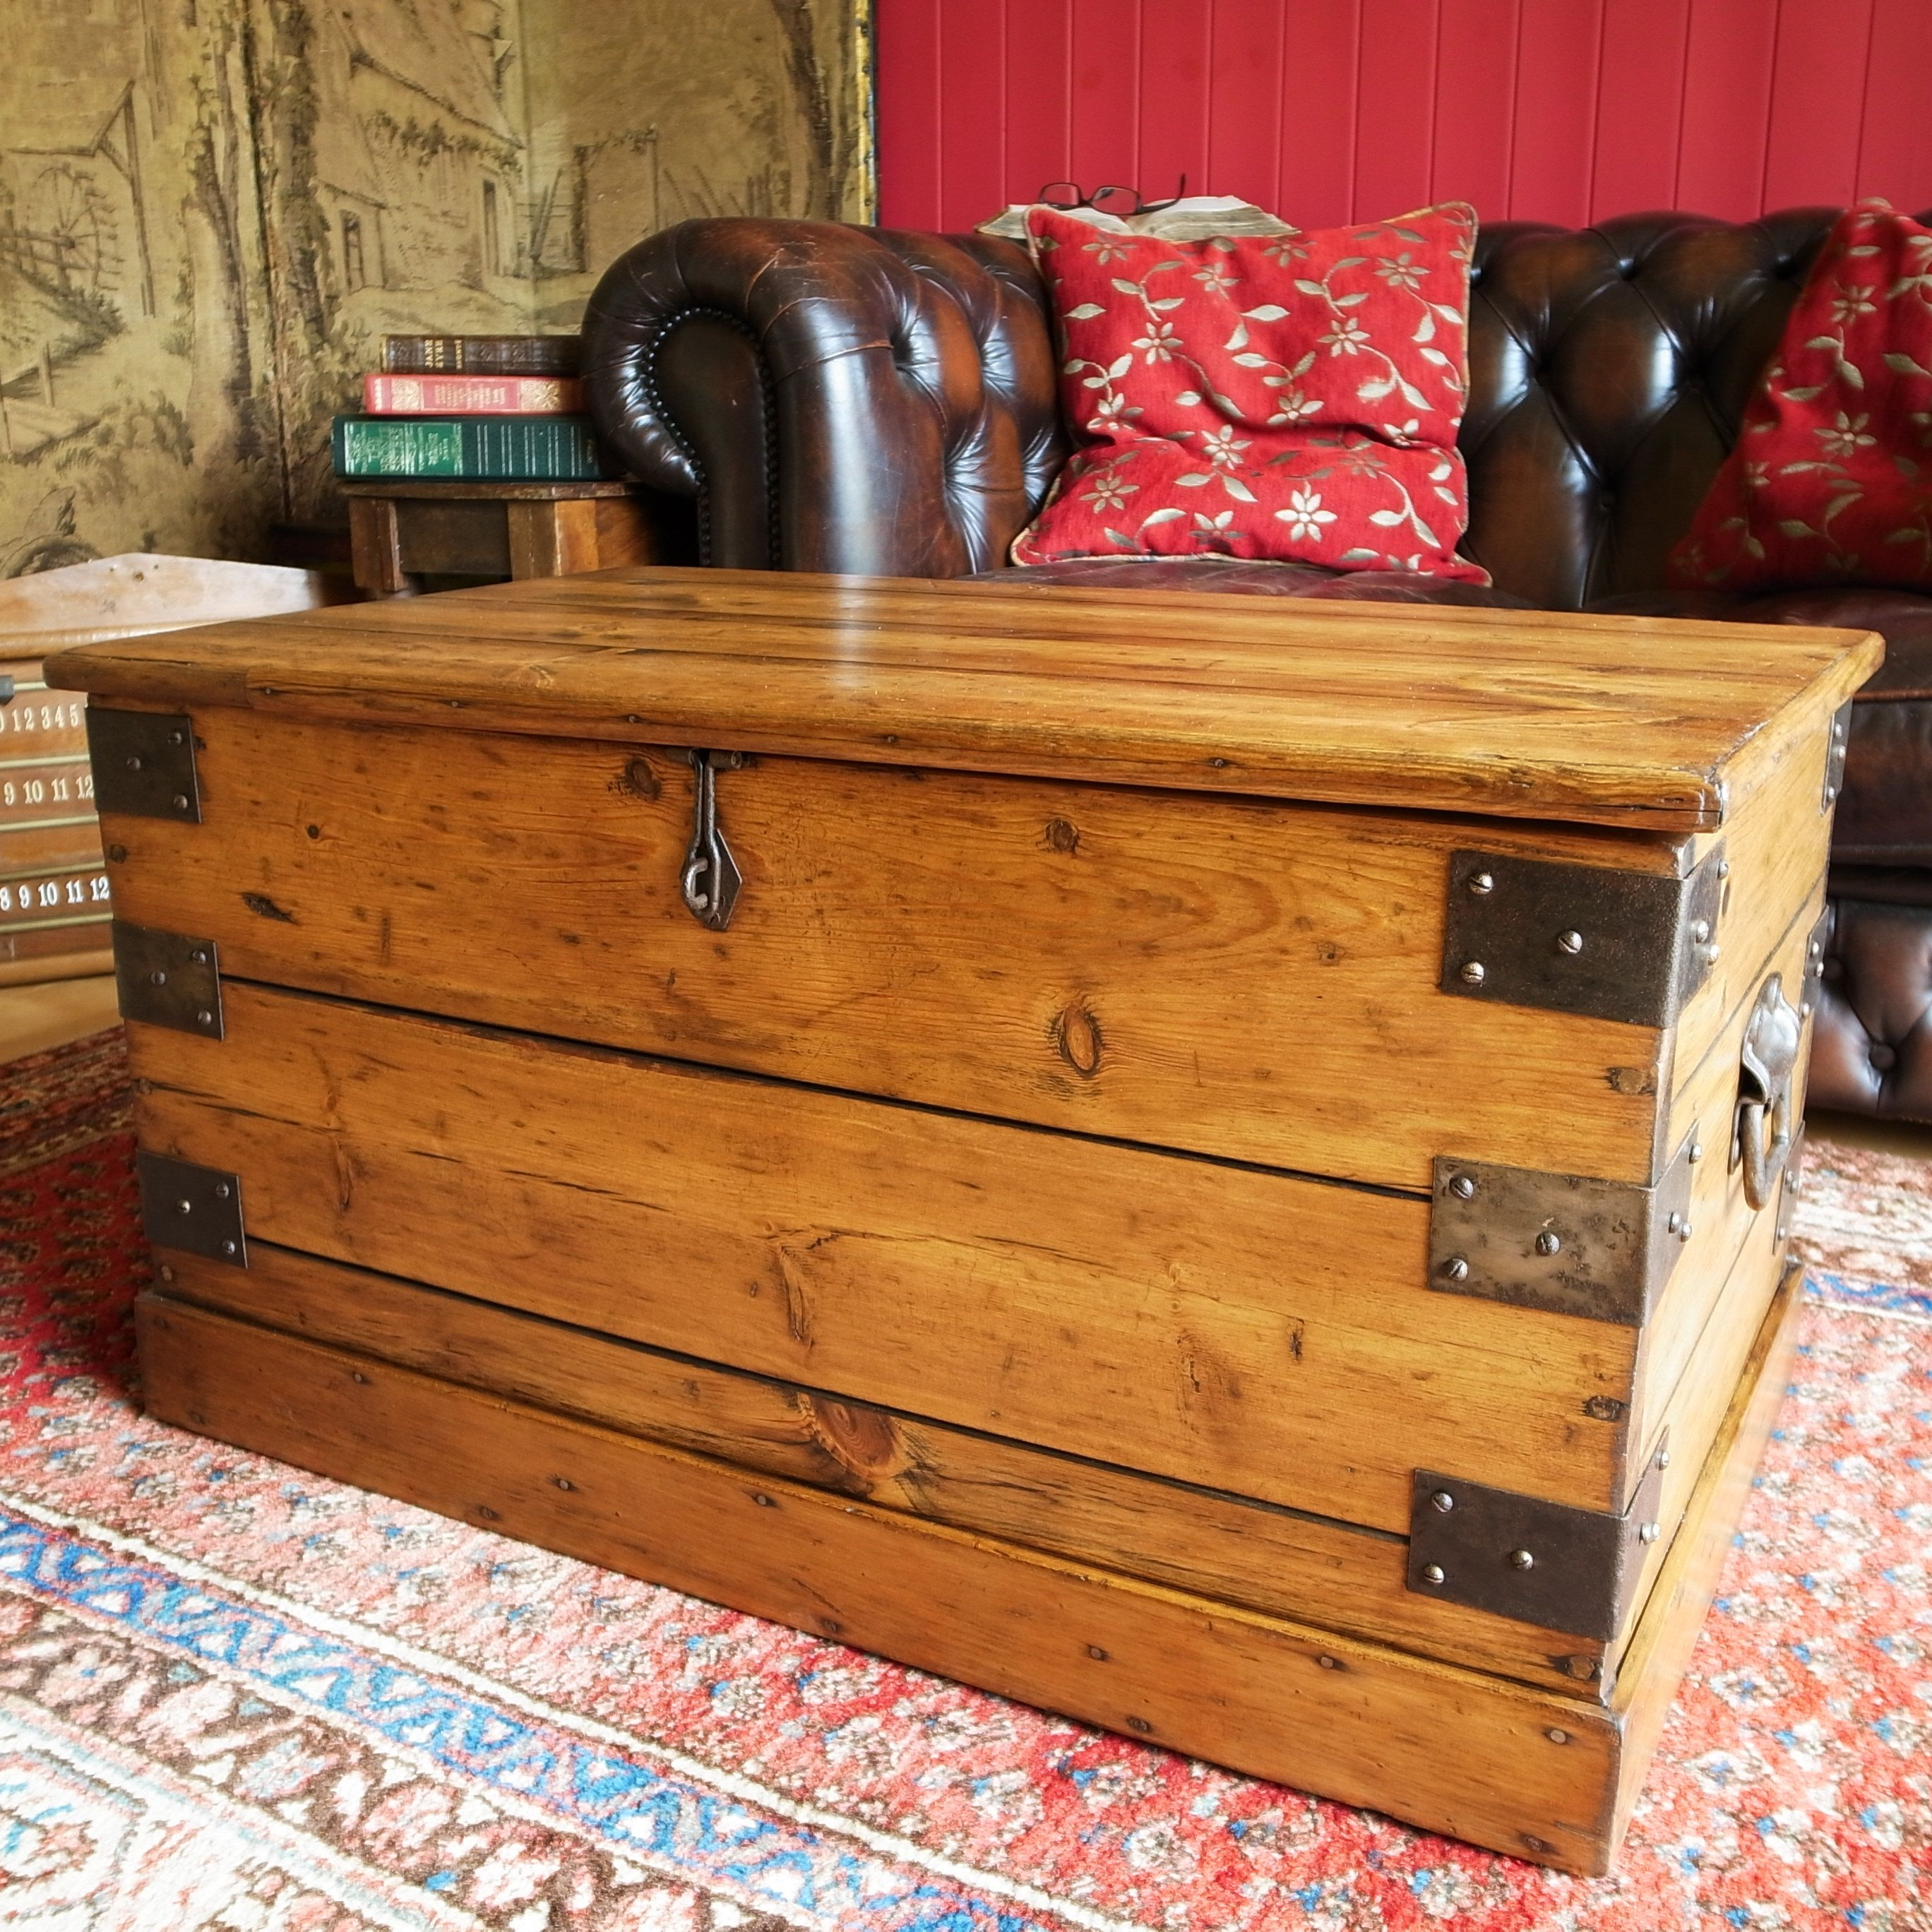 RUSTIC COFFEE TABLE Reclaimed Industrial Tool Chest Mid Century